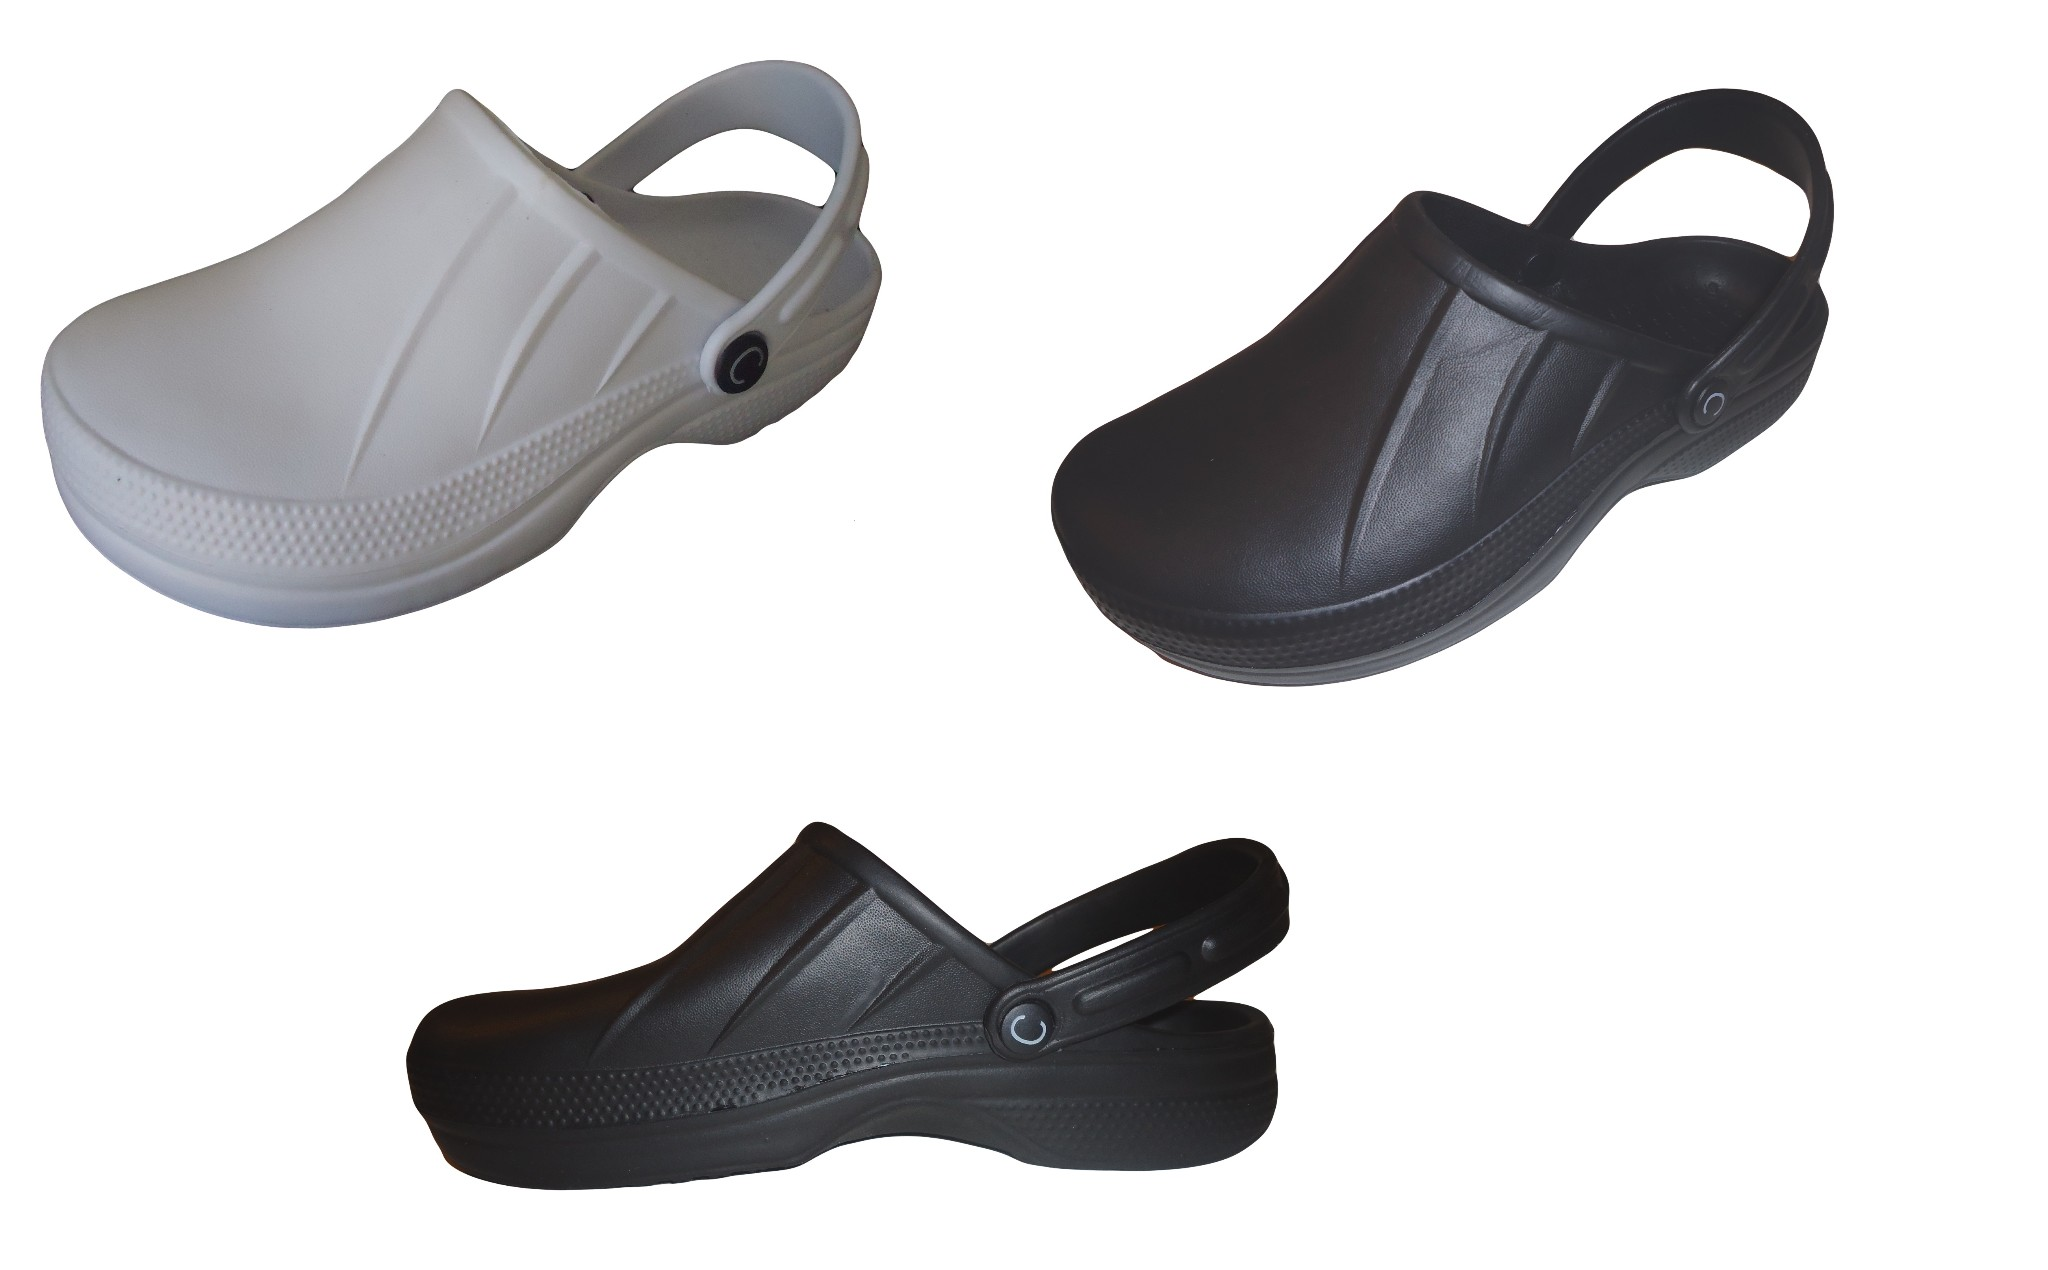 Cloggis Catering Clogs Kitchen Chef Shoes for nurses Footwear